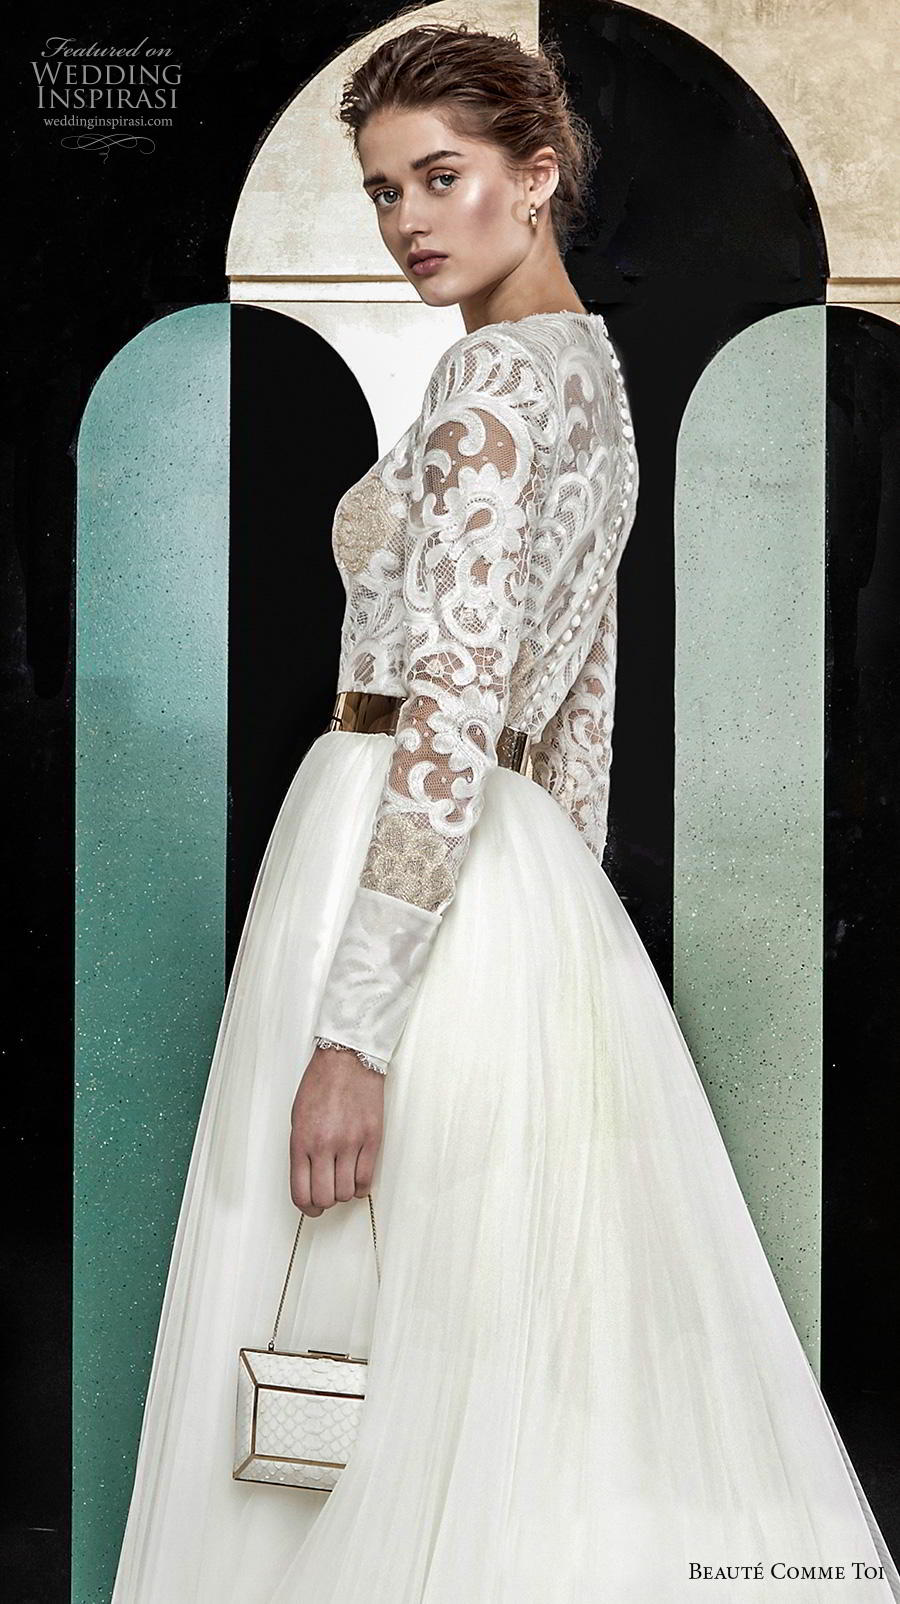 beaute comme toi 2019 bridal long sleeves jewel neck heavily embellished bodice modest glamorous classy a  line wedding dress lace button back chapel train (aude) zbv